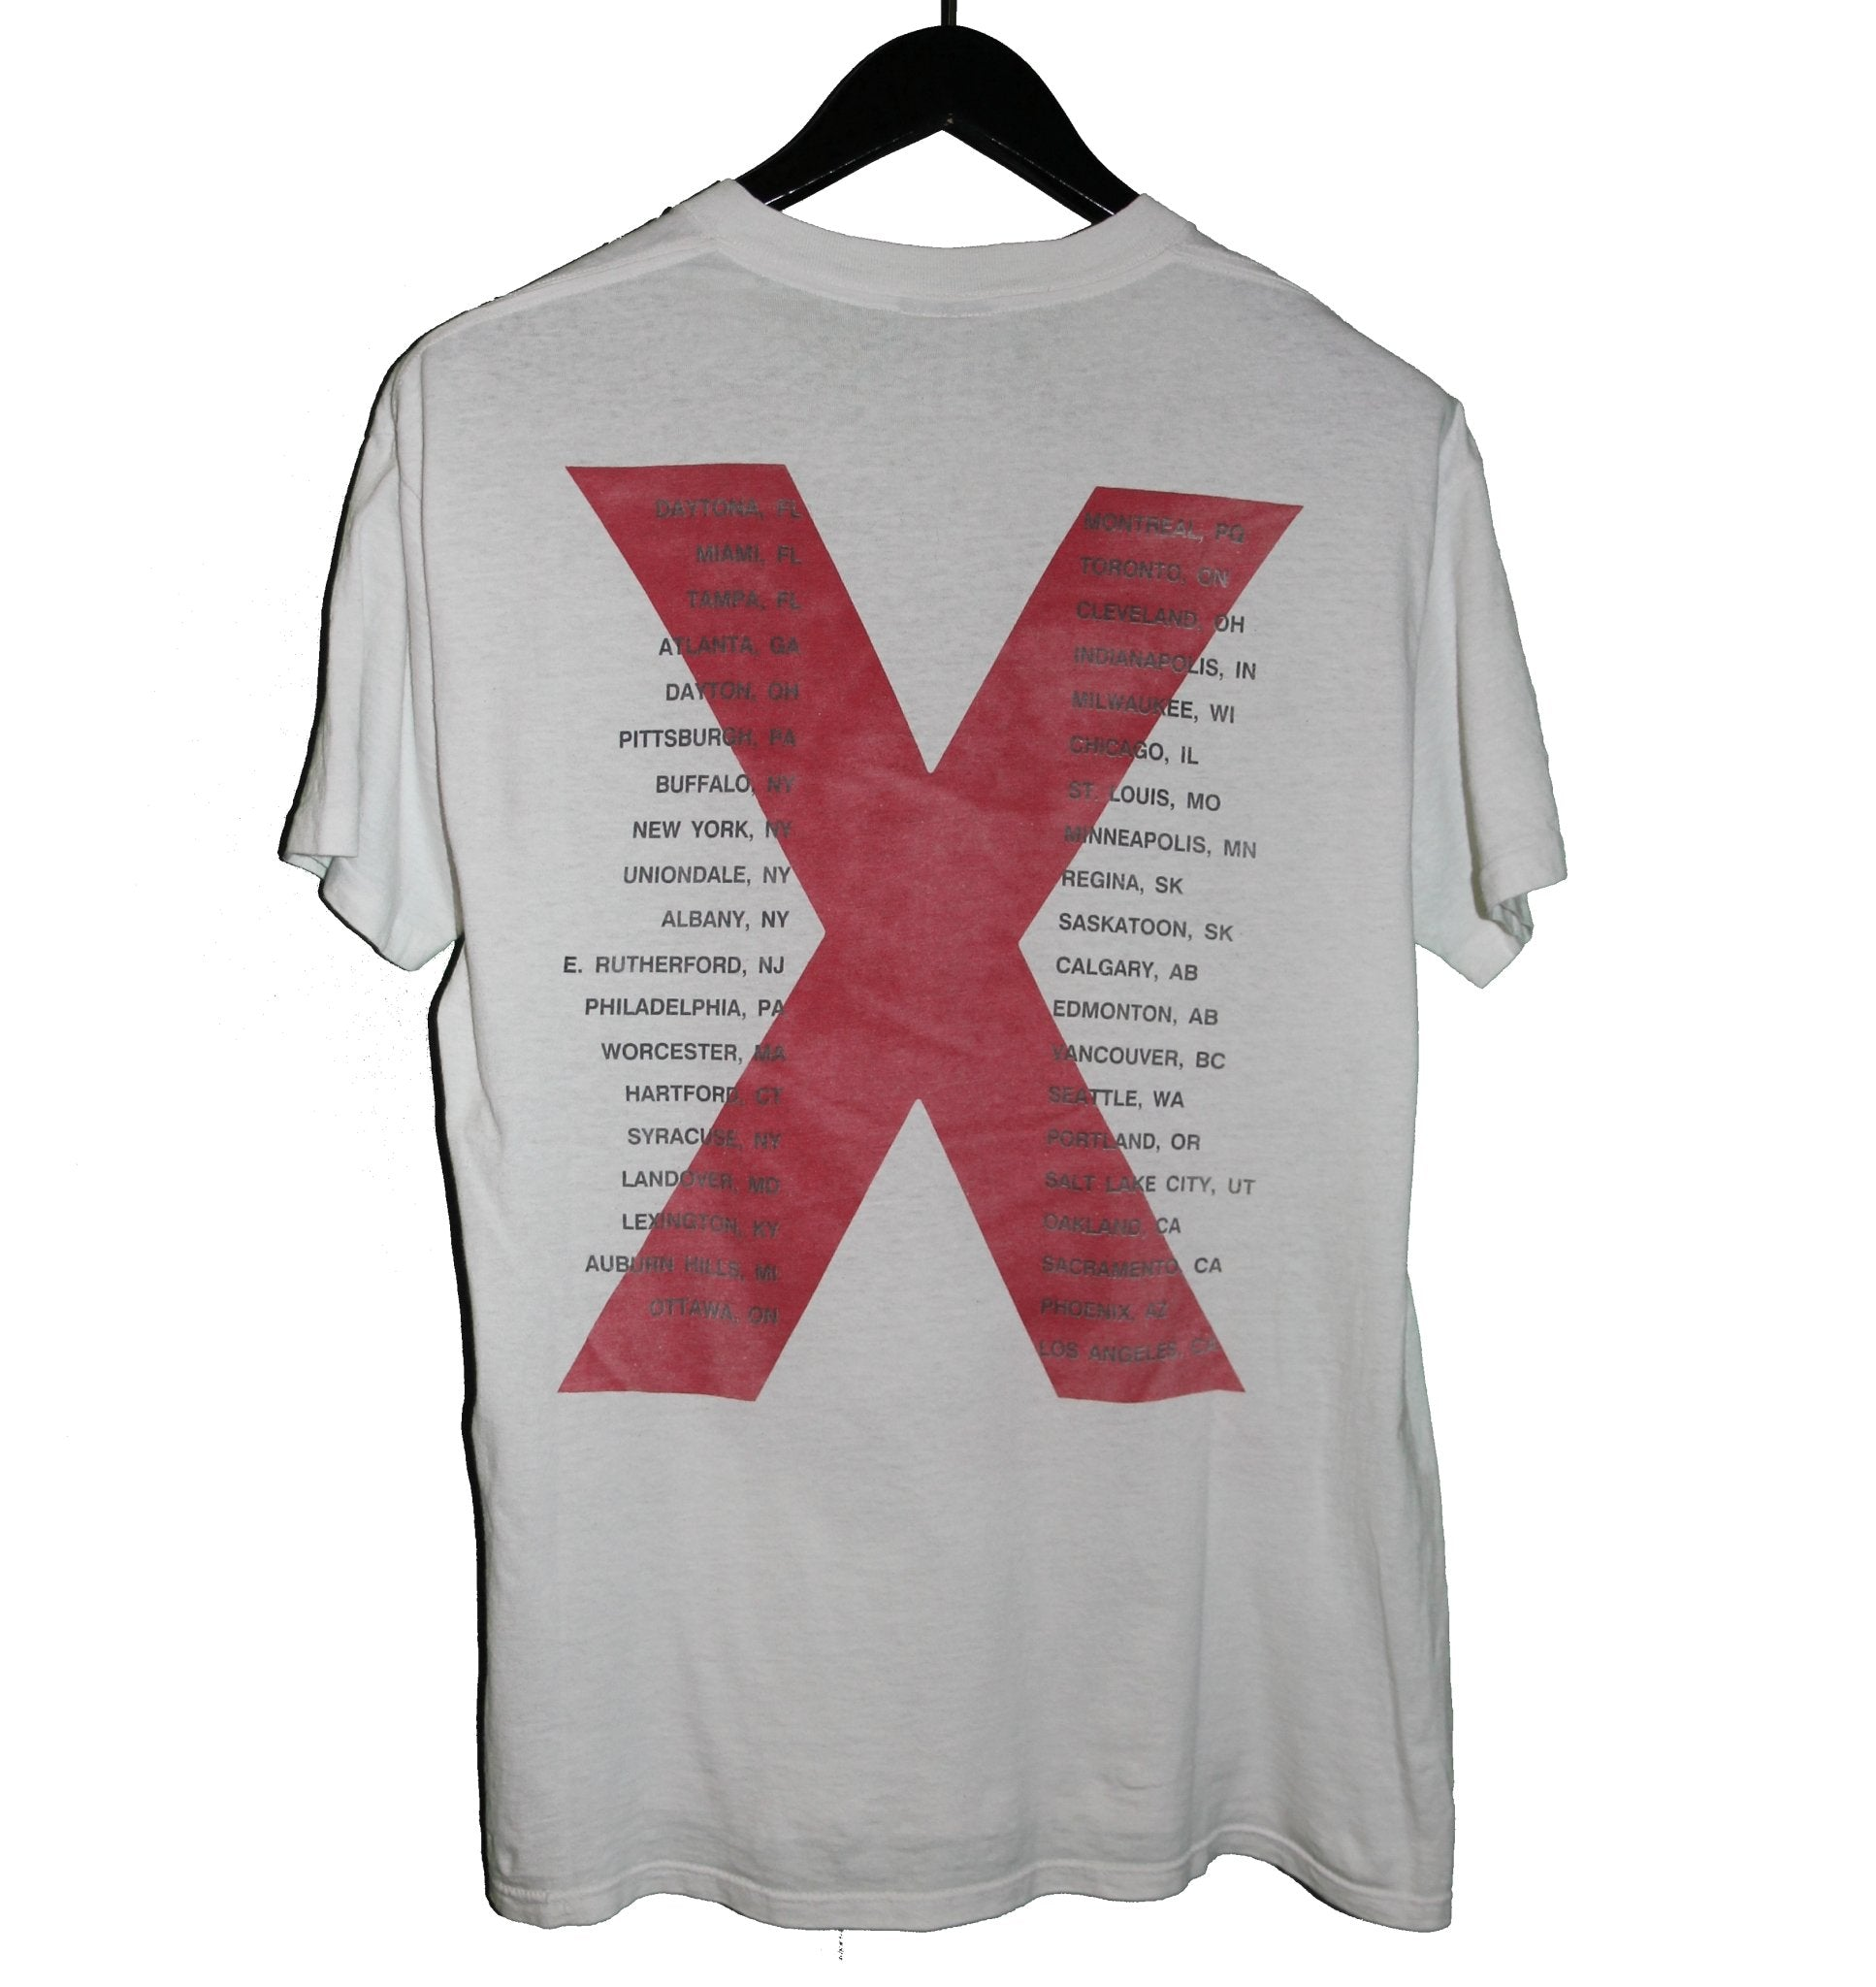 INXS 1991 X Factor Tour Shirt - Faded AU